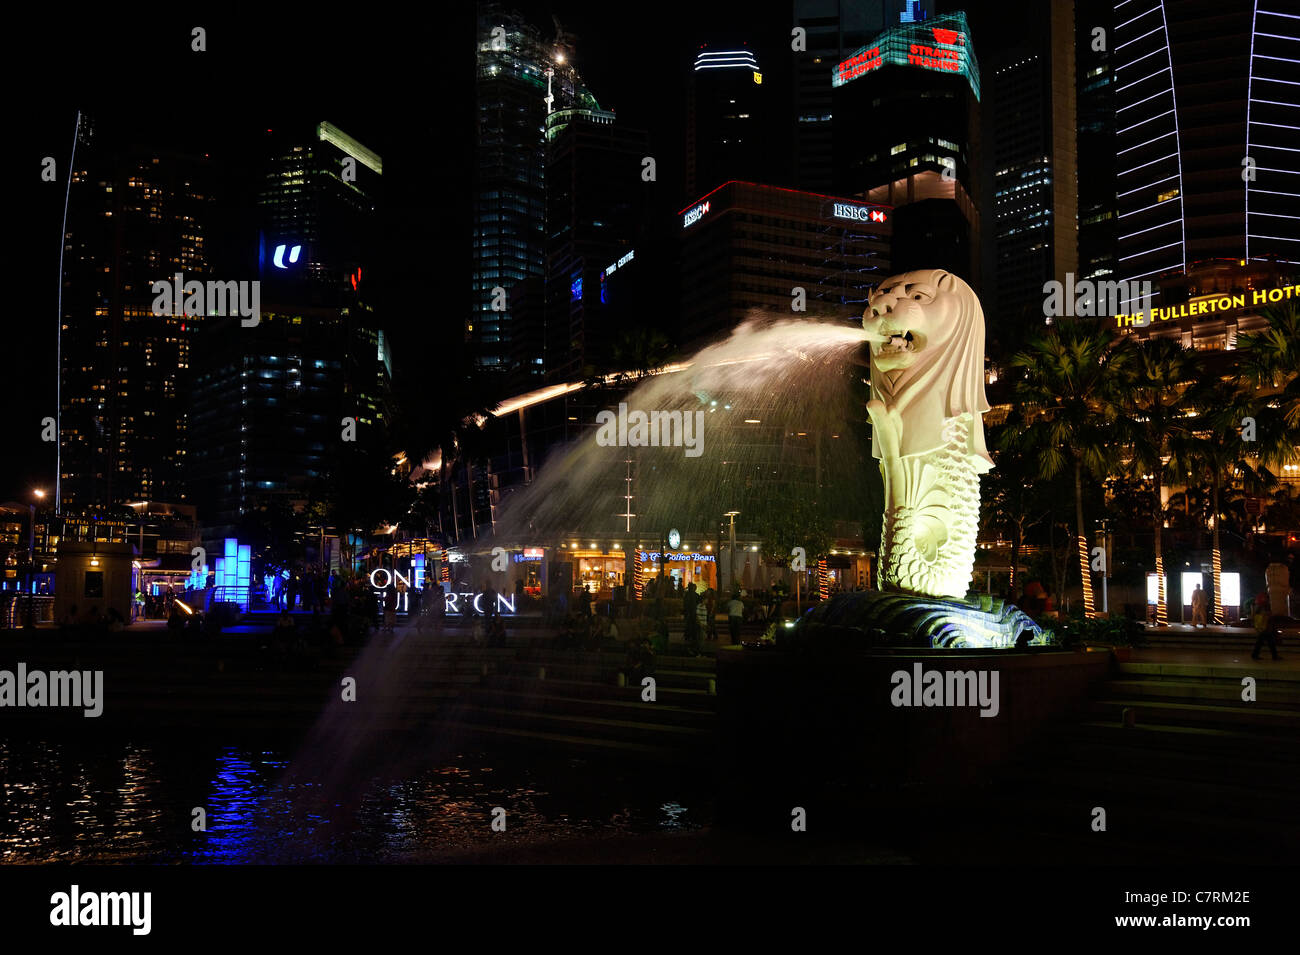 Floodlit Singapore Merlion fountaining spouting water at night with the business district and Fullerton Hotel behind. - Stock Image